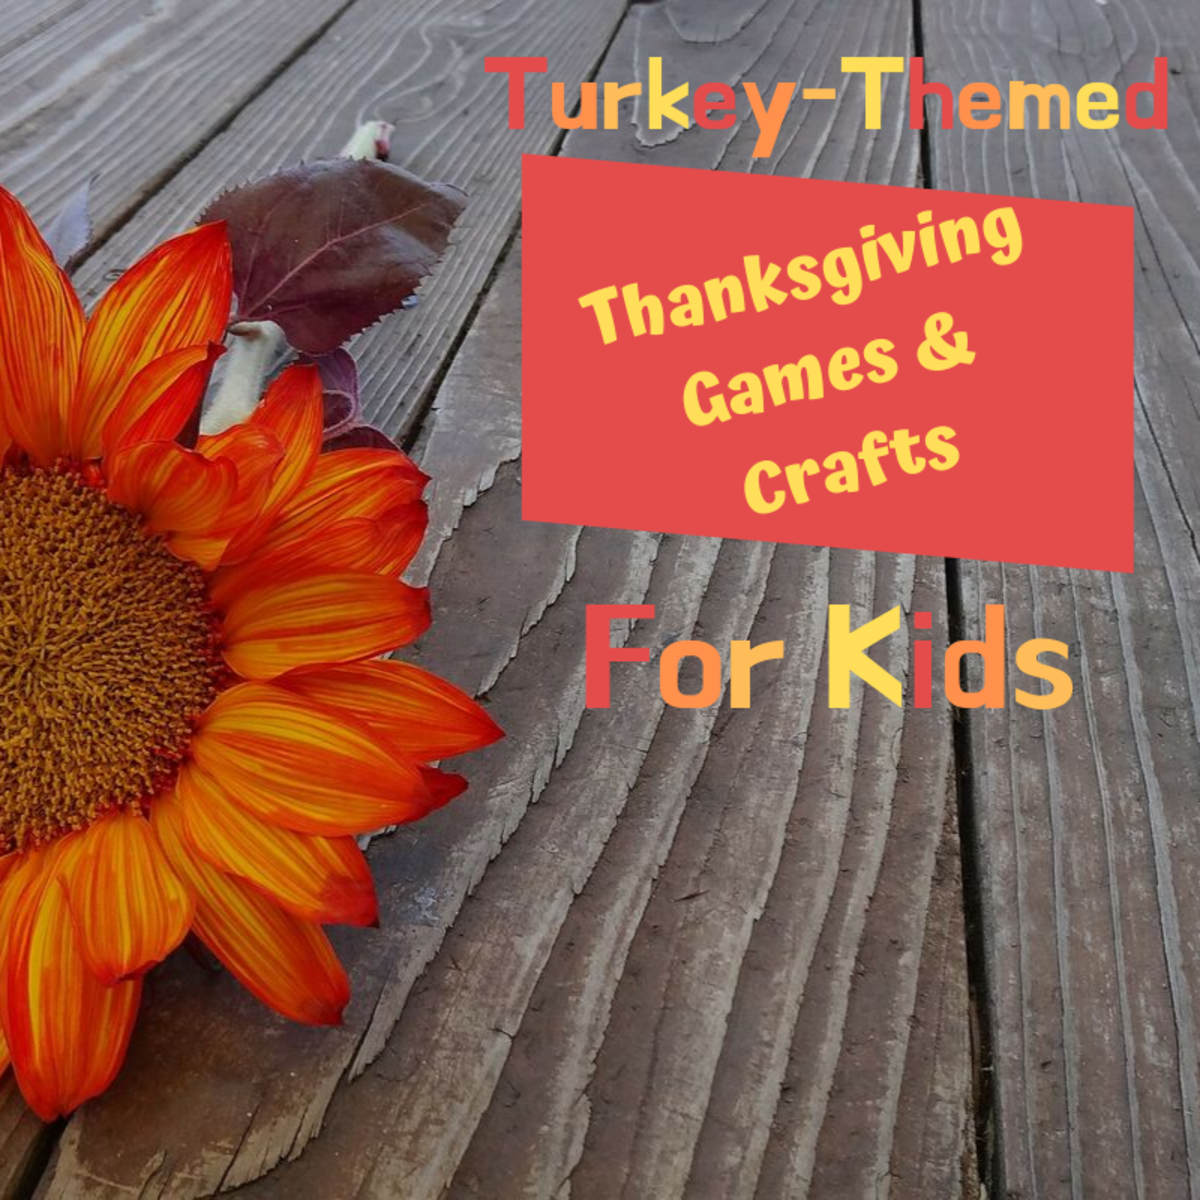 Keeping kids entertained and out of trouble while you prepare for your Thanksgiving gathering can be a real challenge. That's where these holiday activities come in.